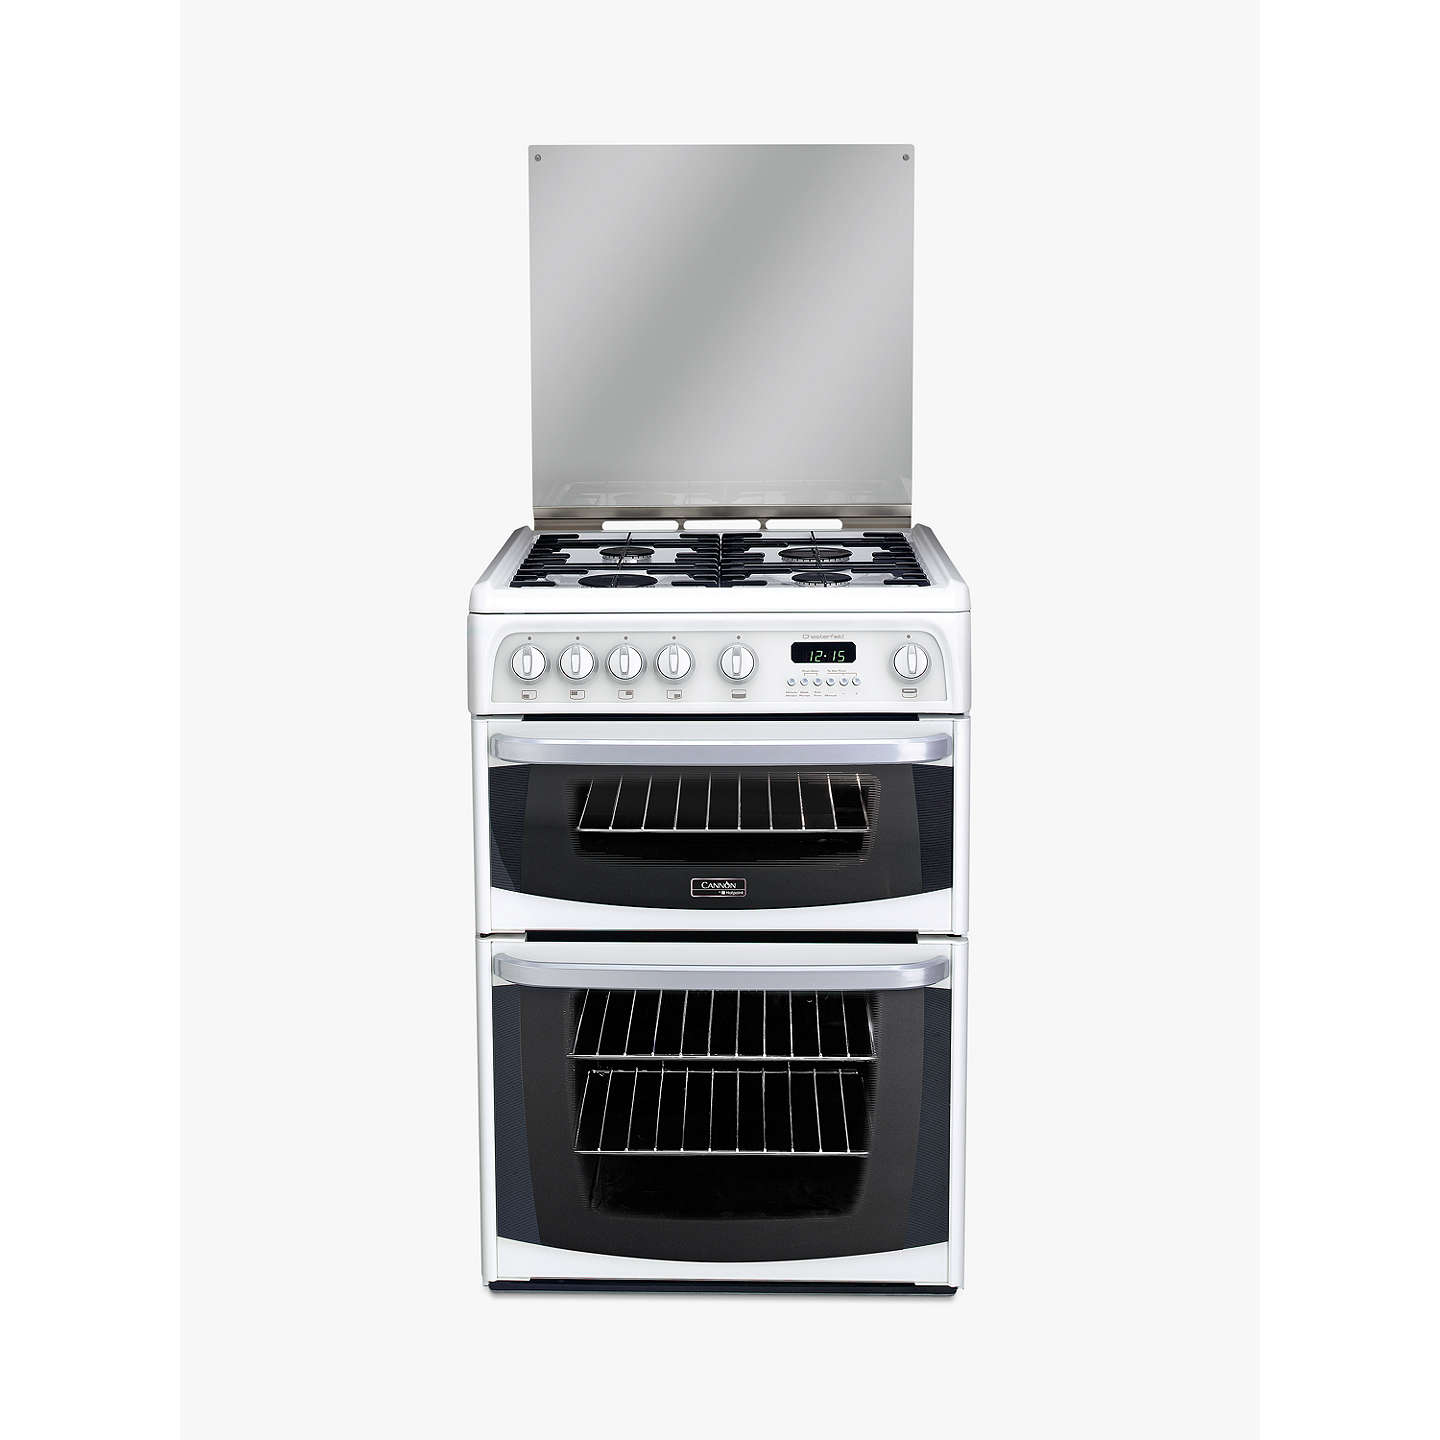 hotpoint cannon ch60gciw gas cooker white at john lewis. Black Bedroom Furniture Sets. Home Design Ideas